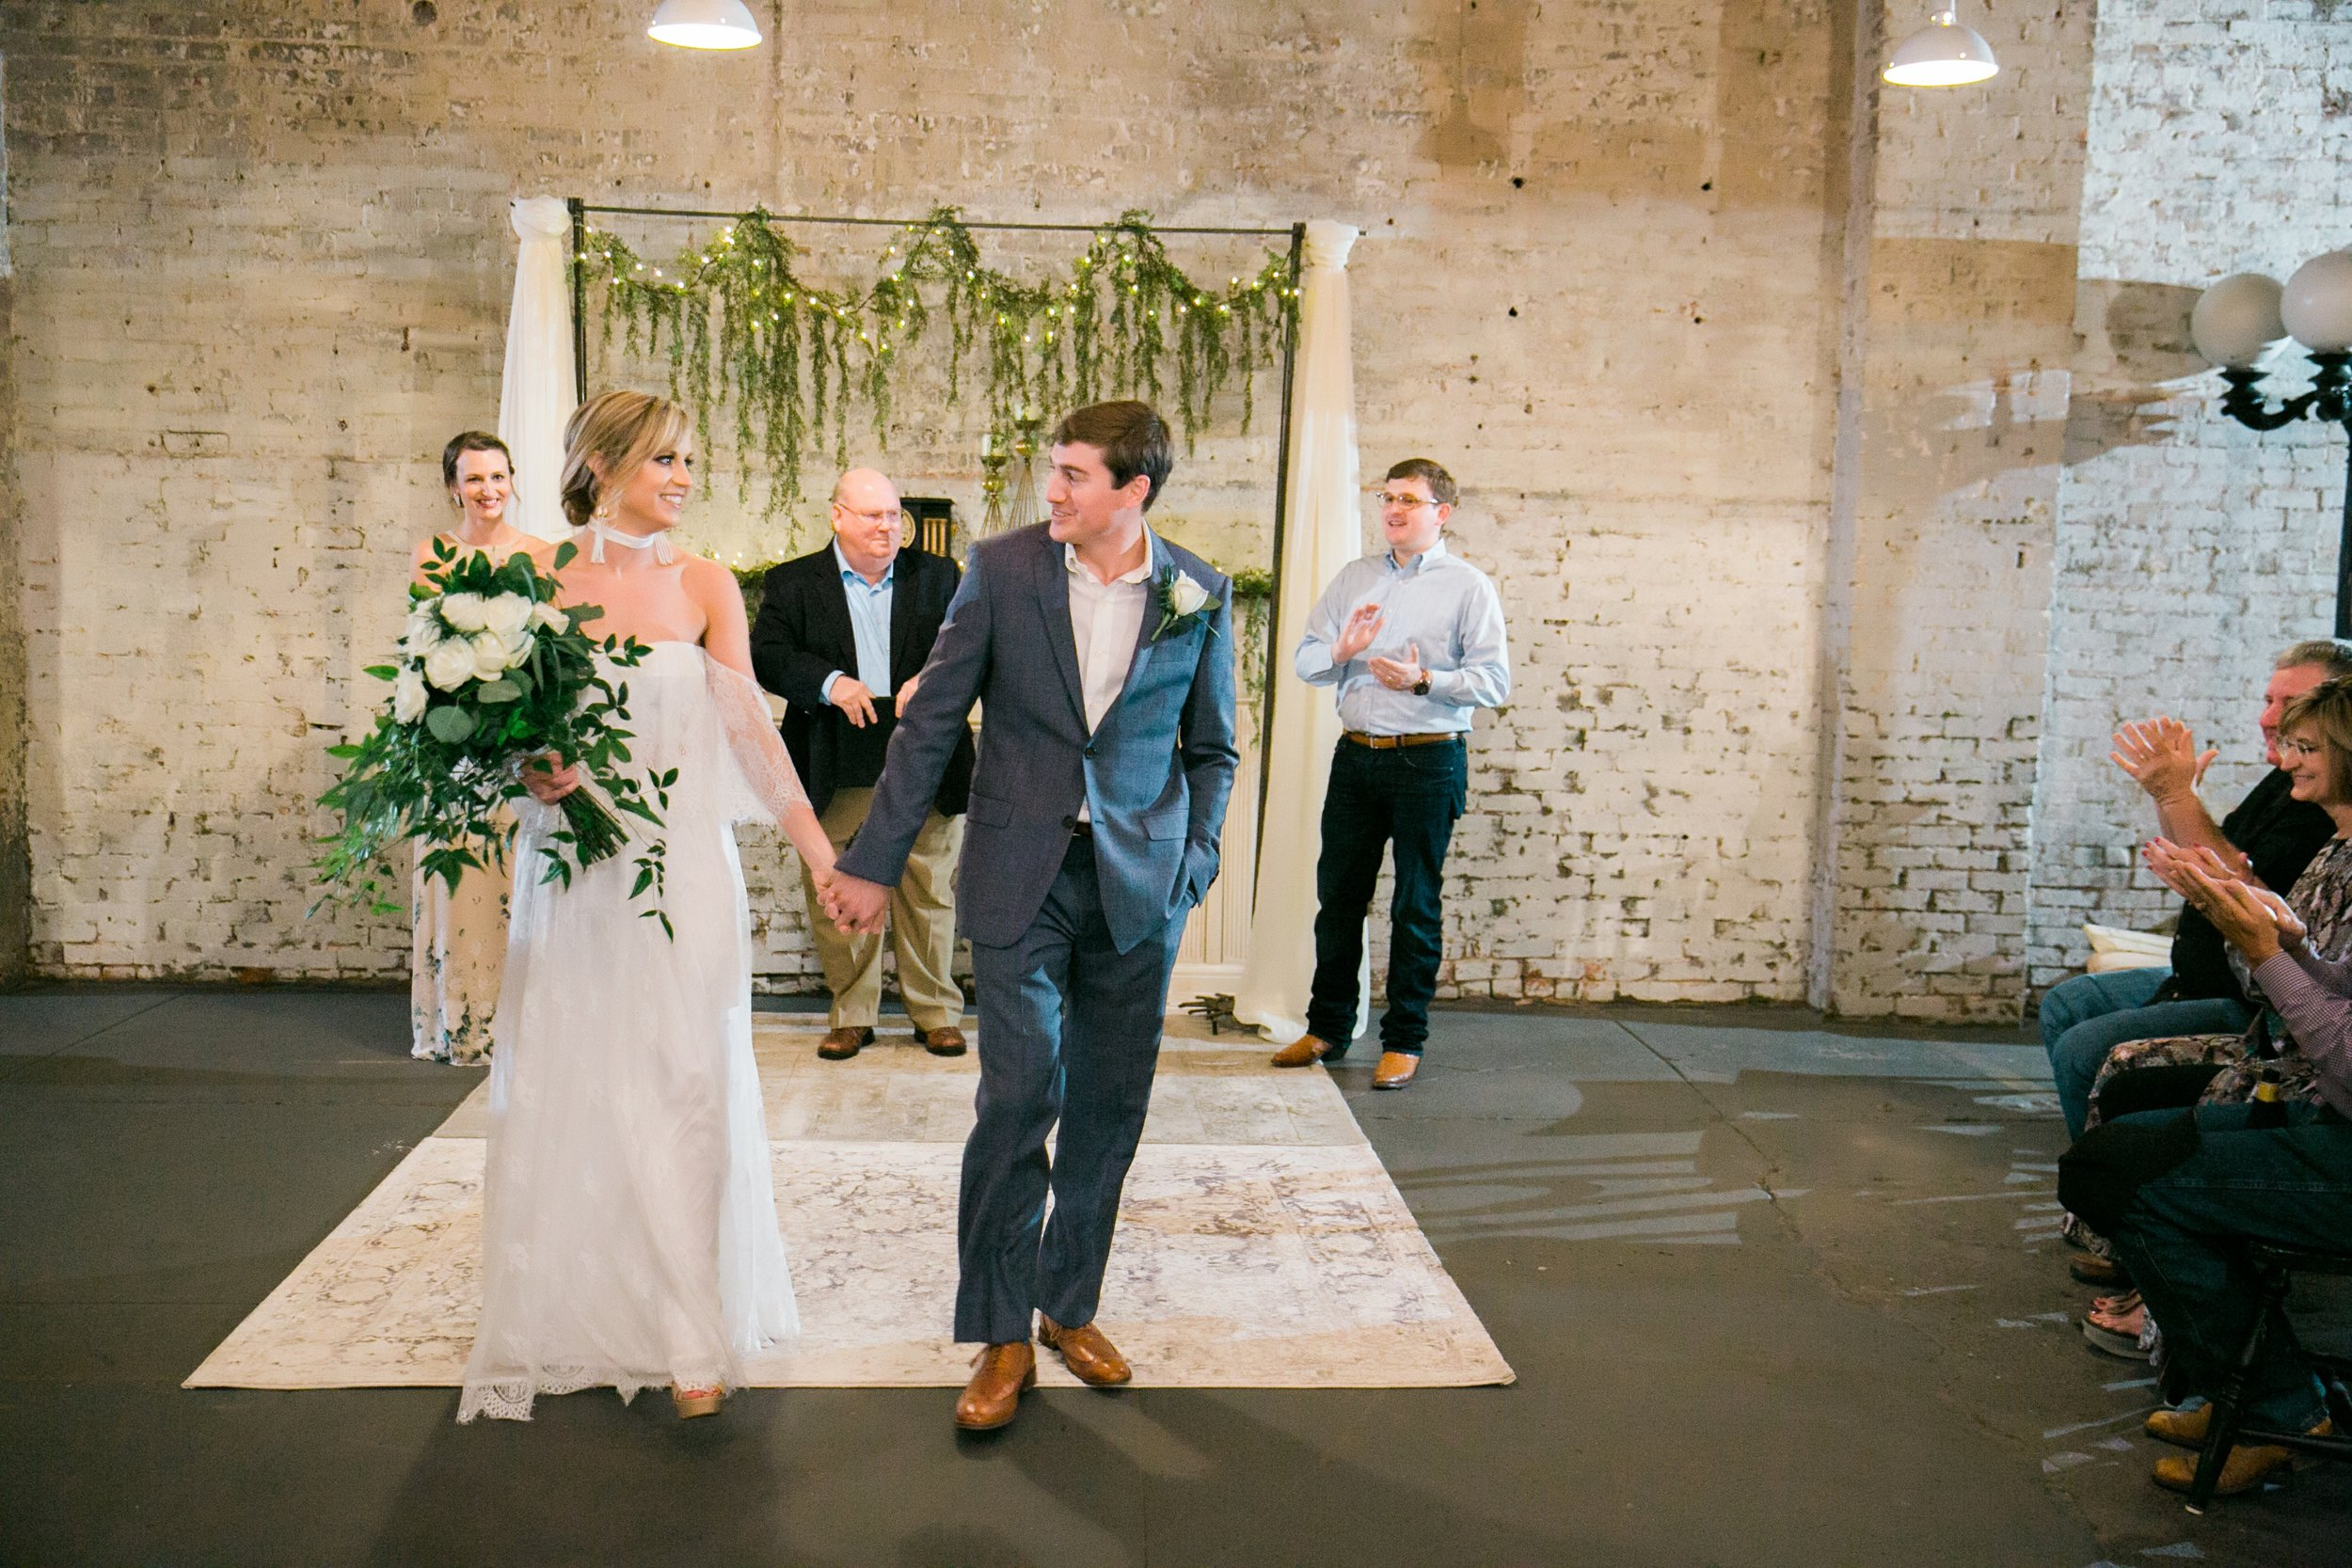 Magan-Landon-Surprise-wedding-at-southern-jeweled-warehouse-wichita-falls-texas-lauren-pinson-060.jpg